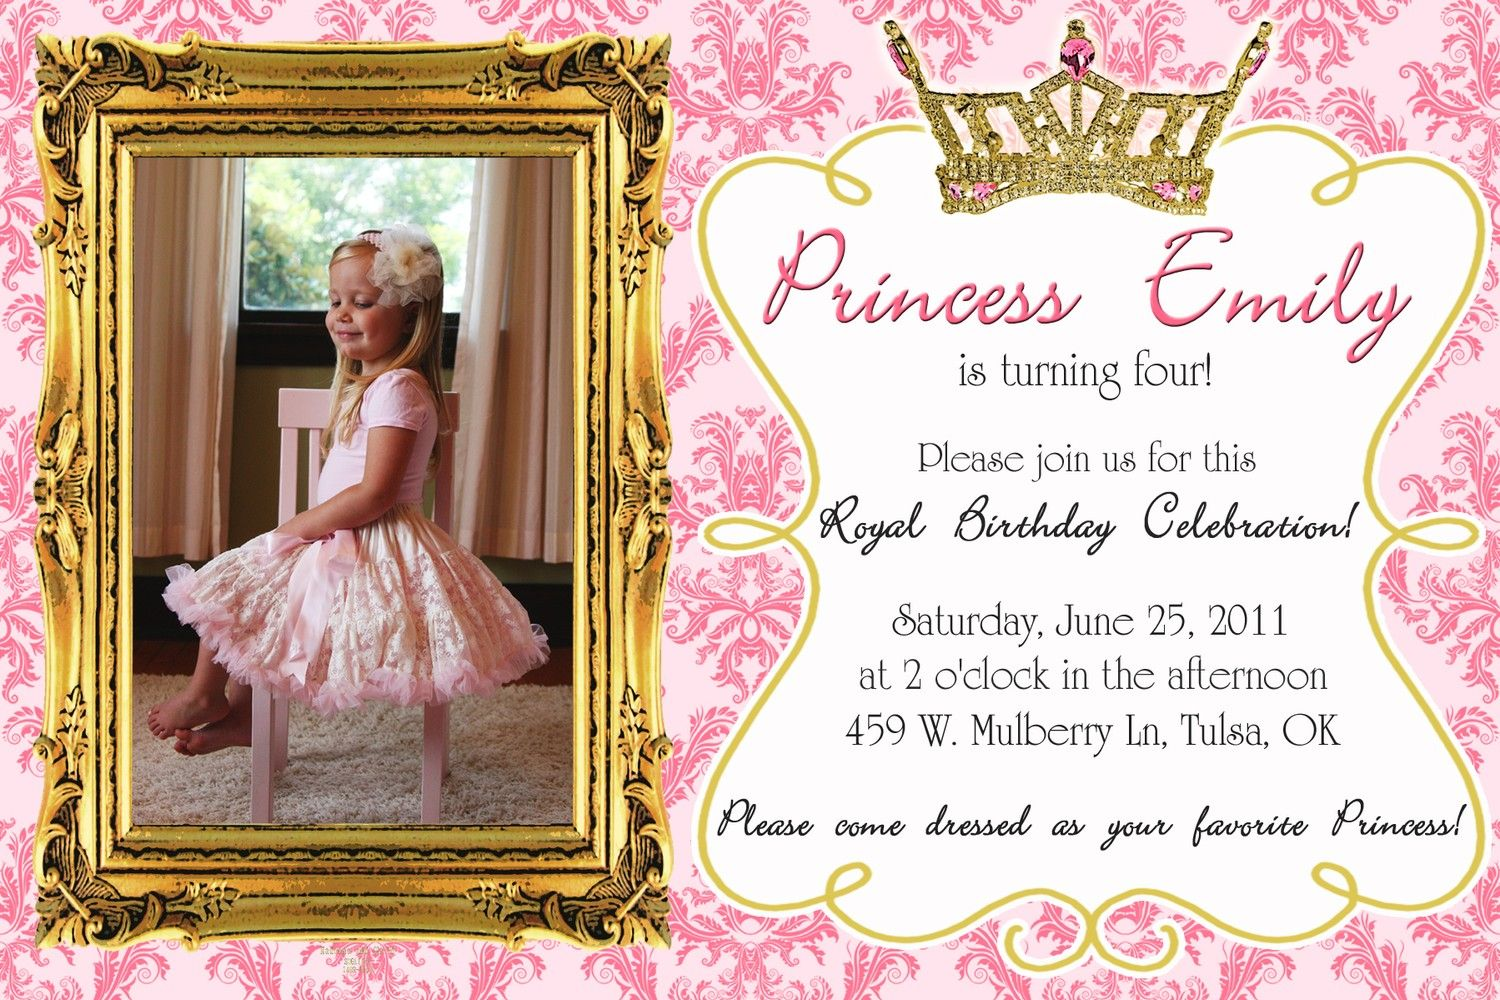 pink sparkly baby shower royal princess pink glitter baby shower pink sparkly baby shower royal princess pink glitter baby shower invitation r d b af cb imtq